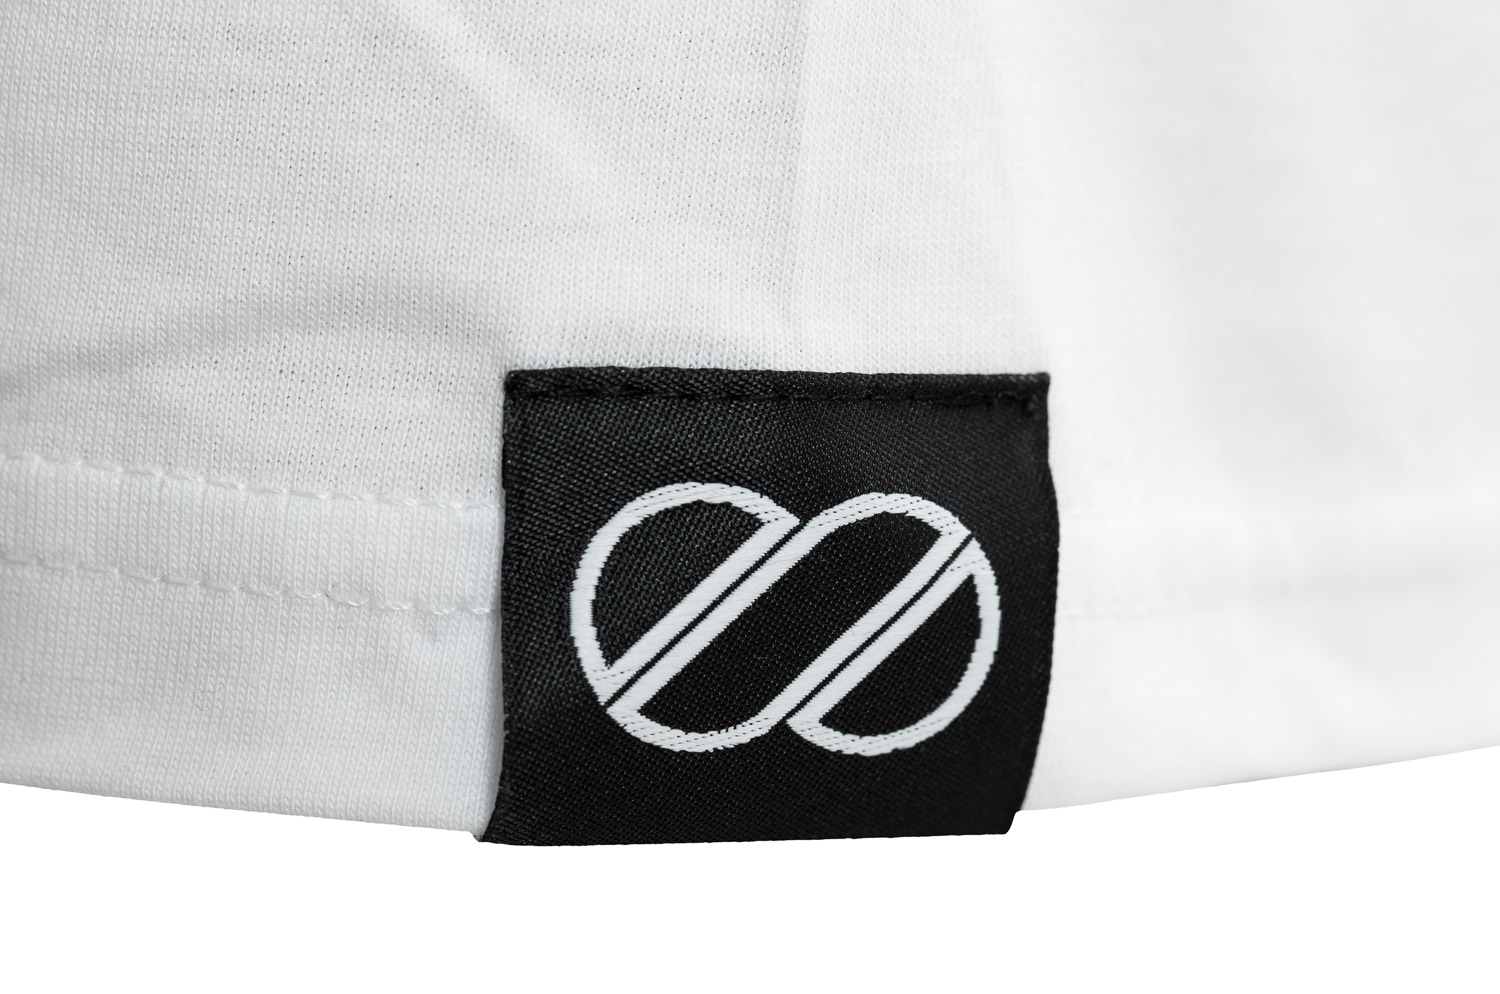 8bar tshirt detail white - Hoodie - 8bar logo